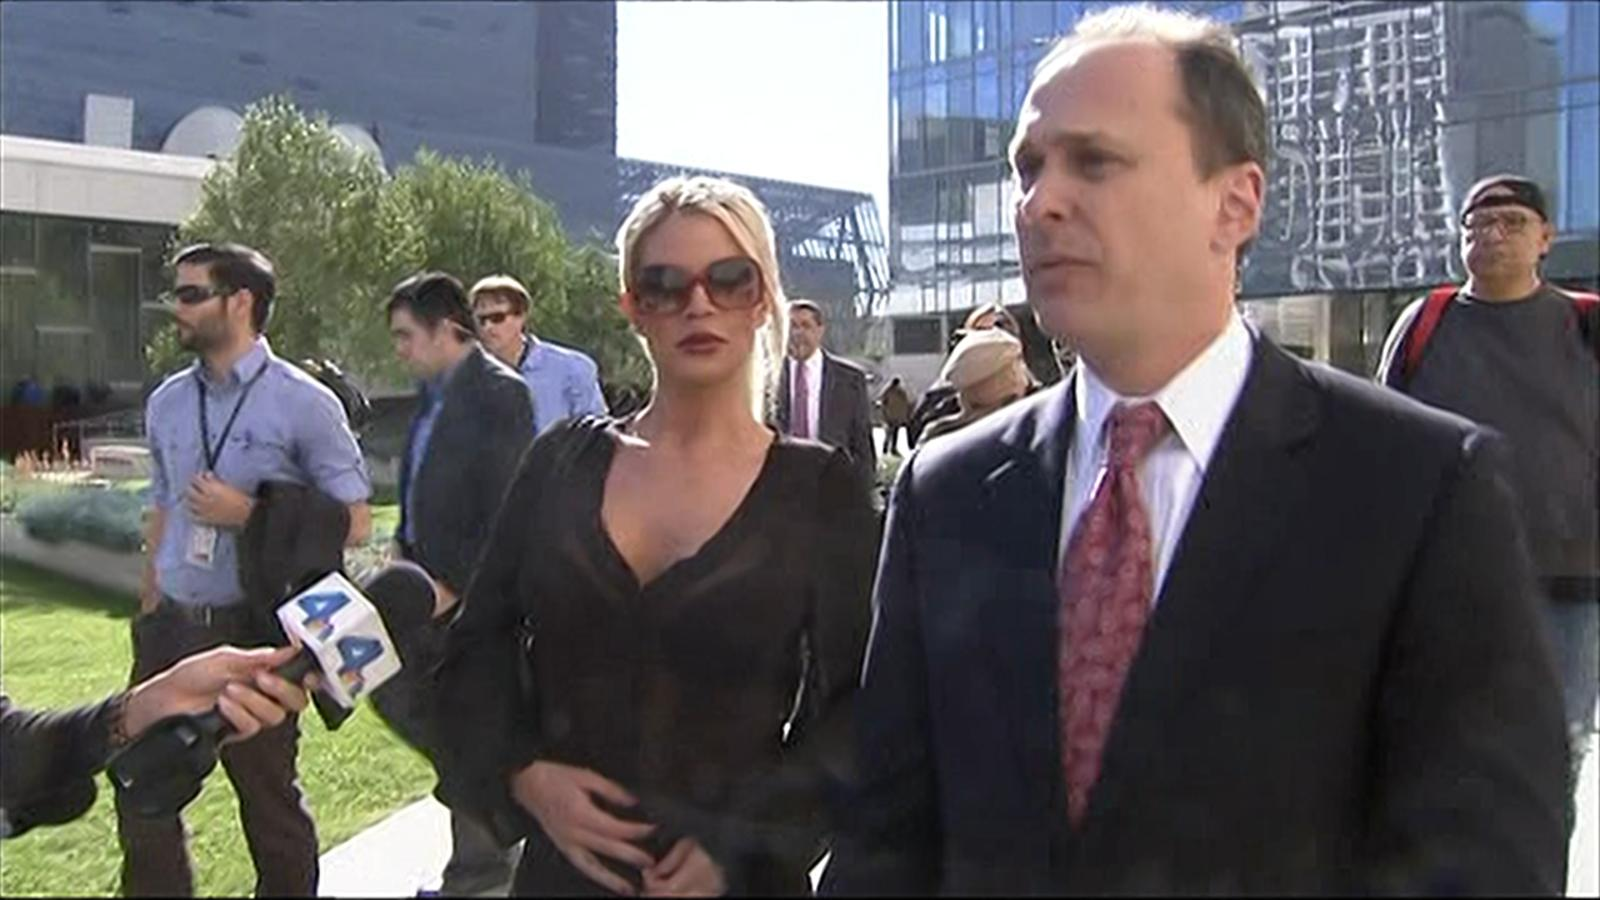 Video model chloe goins is pursuing criminal charges against bill